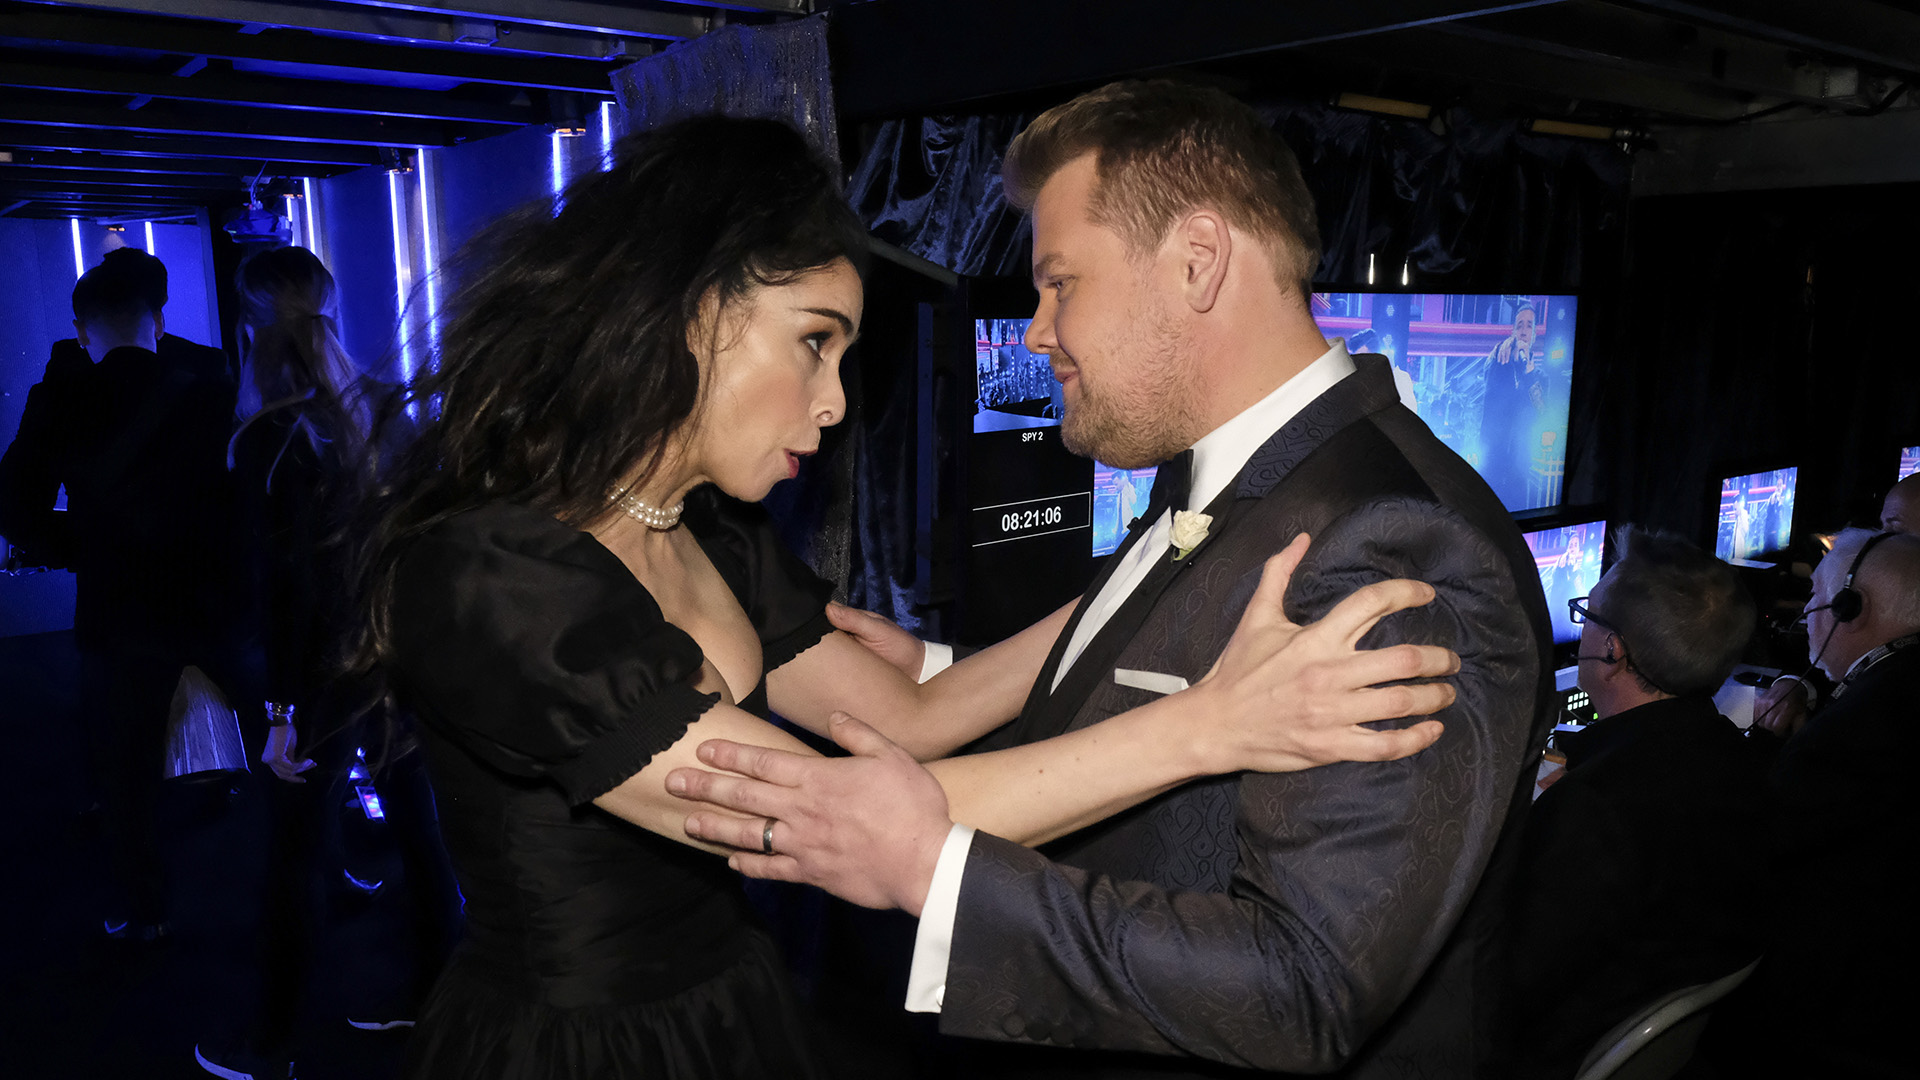 Comedian and Best Comedy Album nominee Sarah Silverman clutches host James Corden by the shoulders backstage at Madison Square Garden.